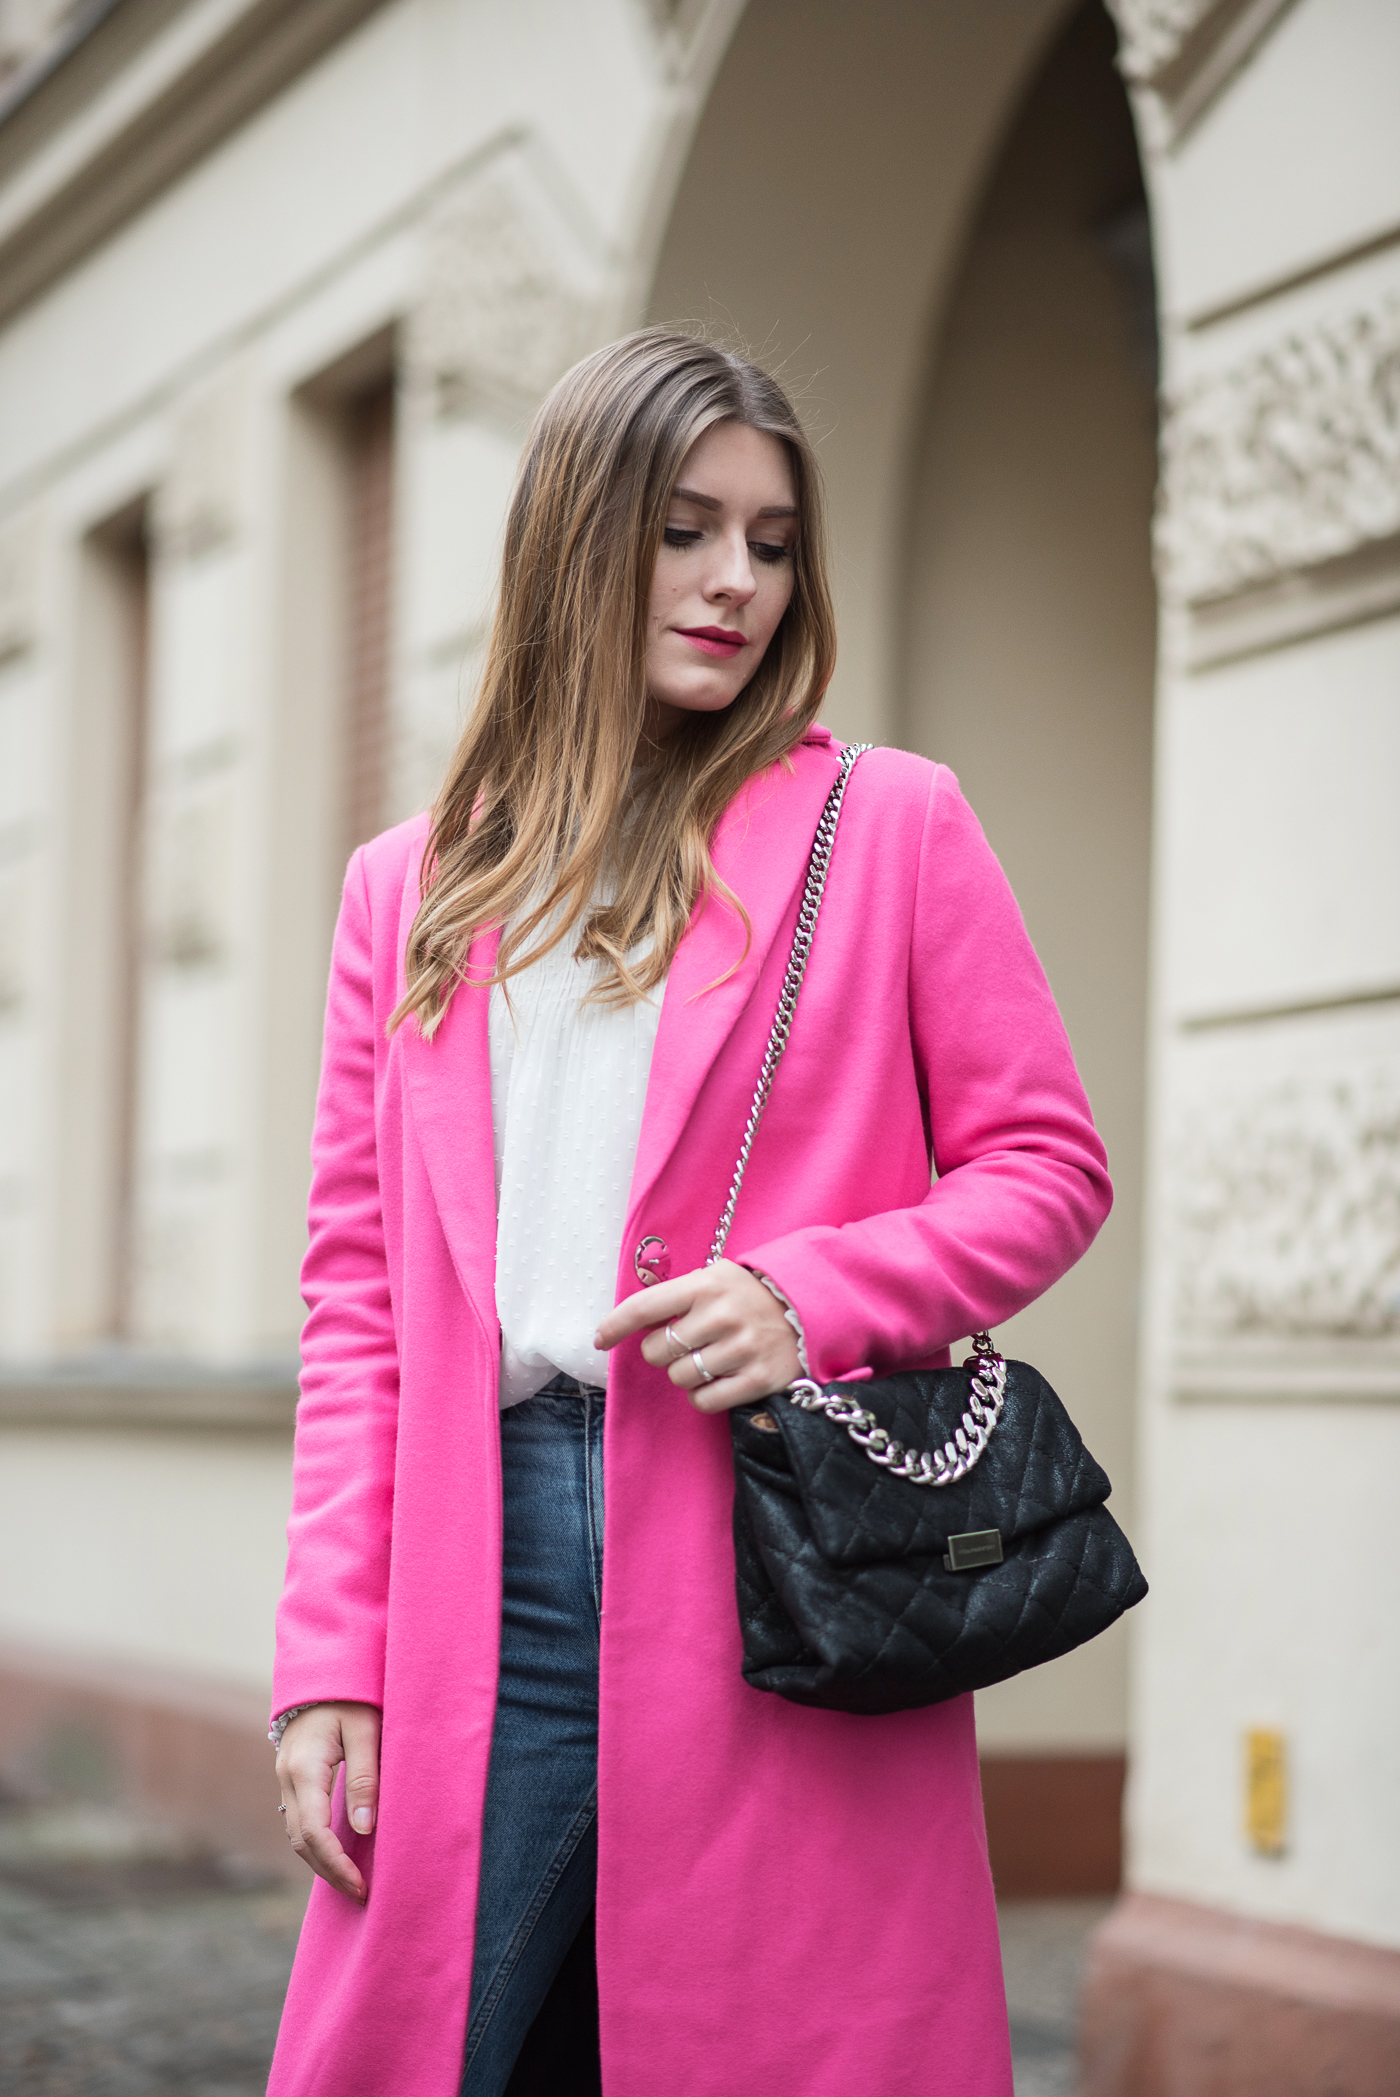 on_monday_wear_pink_topshop_coat_8